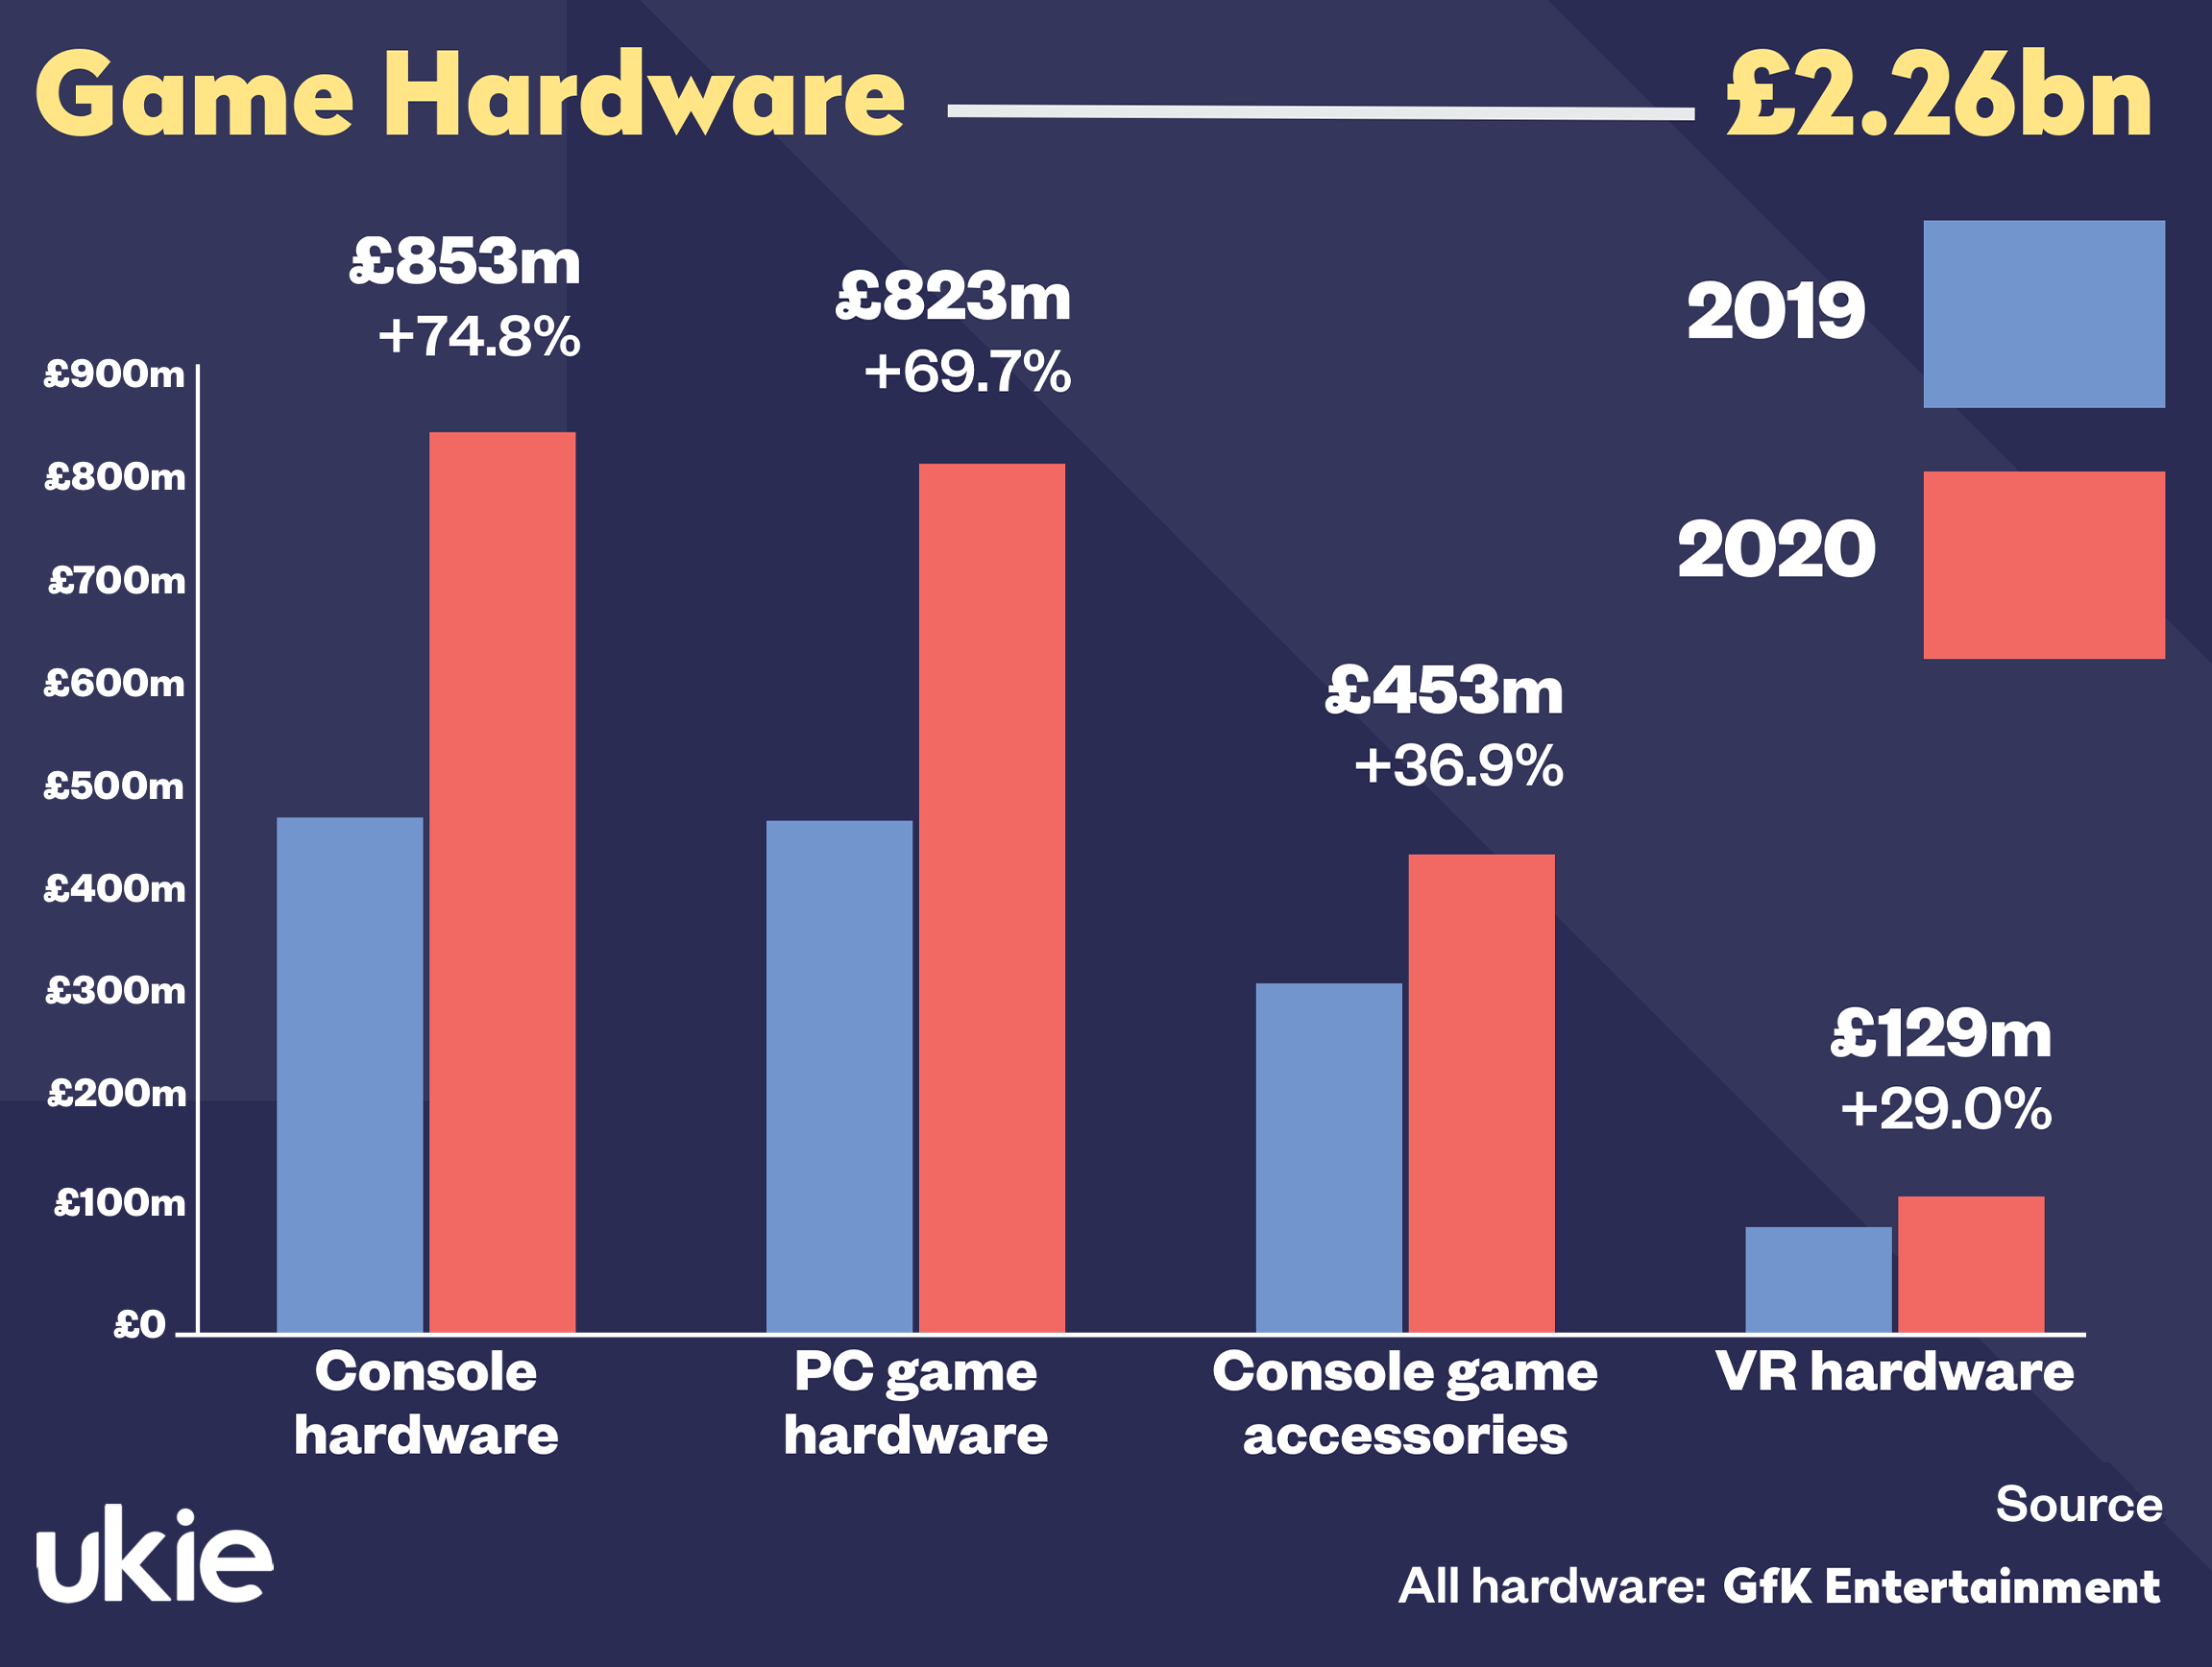 Game hardware revenues achieve a new high of £2.26bn.